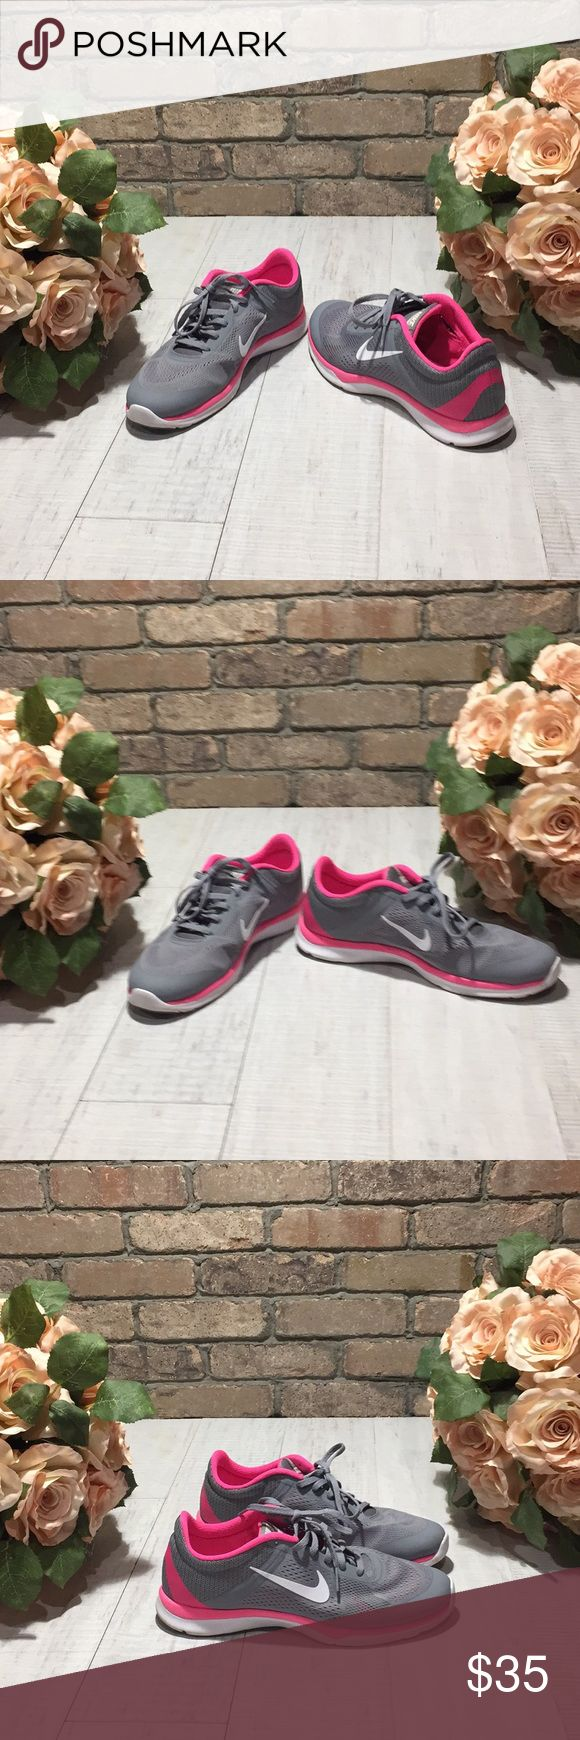 🌺 Nike Woman Training Sneaker 🌺 Nike training shoes, kick up your feet and hit the gym or street in style , breathable fabric, soft fabric lining offers a great in-shoes feel, flexible cushioning. Nike Shoes Sneakers